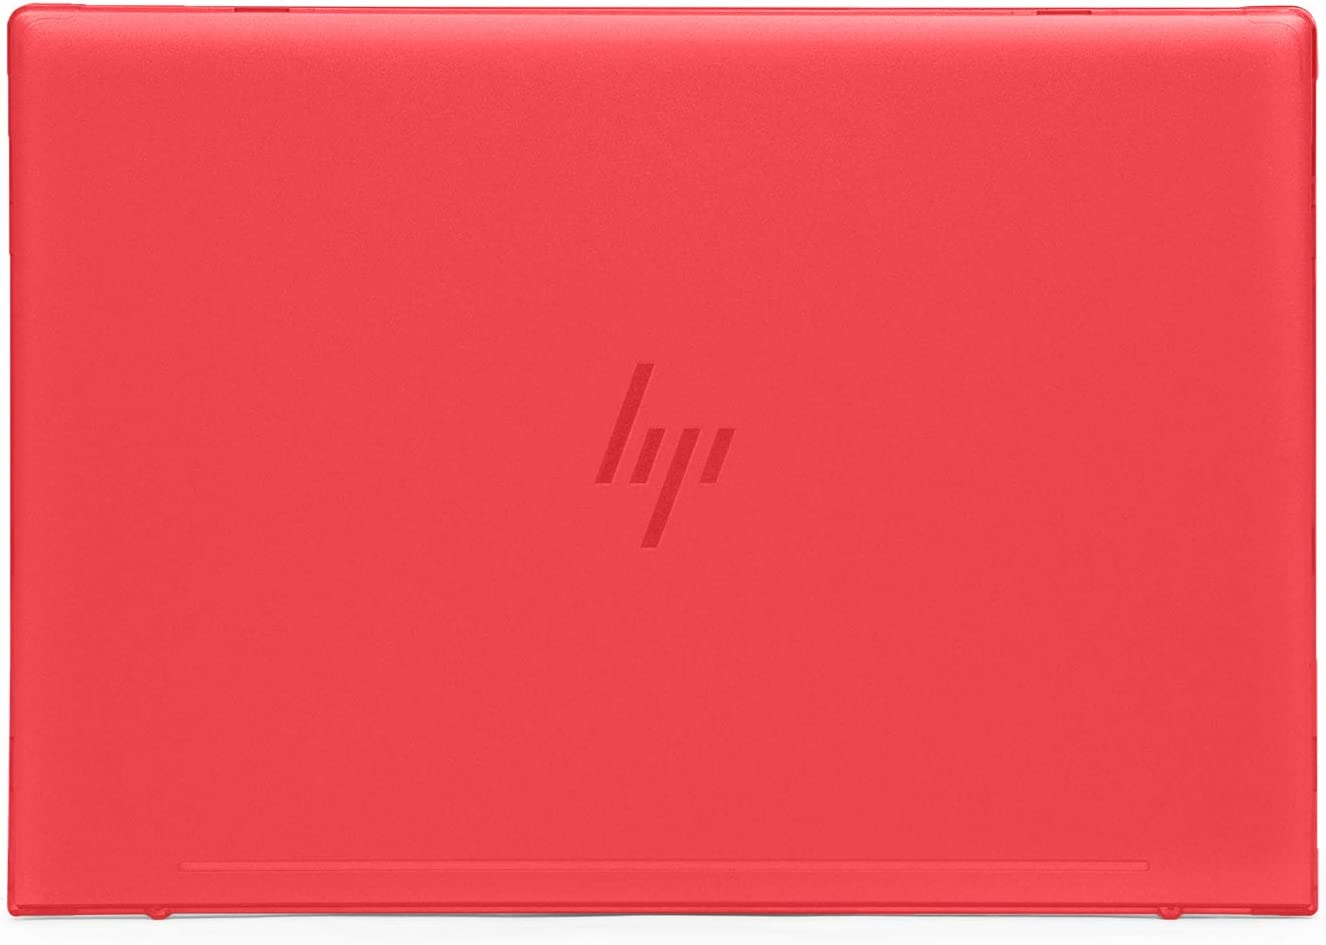 "mCover Hard Shell Case for 13.3"" HP Envy 13-AHxxxx / 13-AQ0000 Series (NOT Compatible with Other HP Series) Laptop PCs - Envy13-AH-AQ Red"